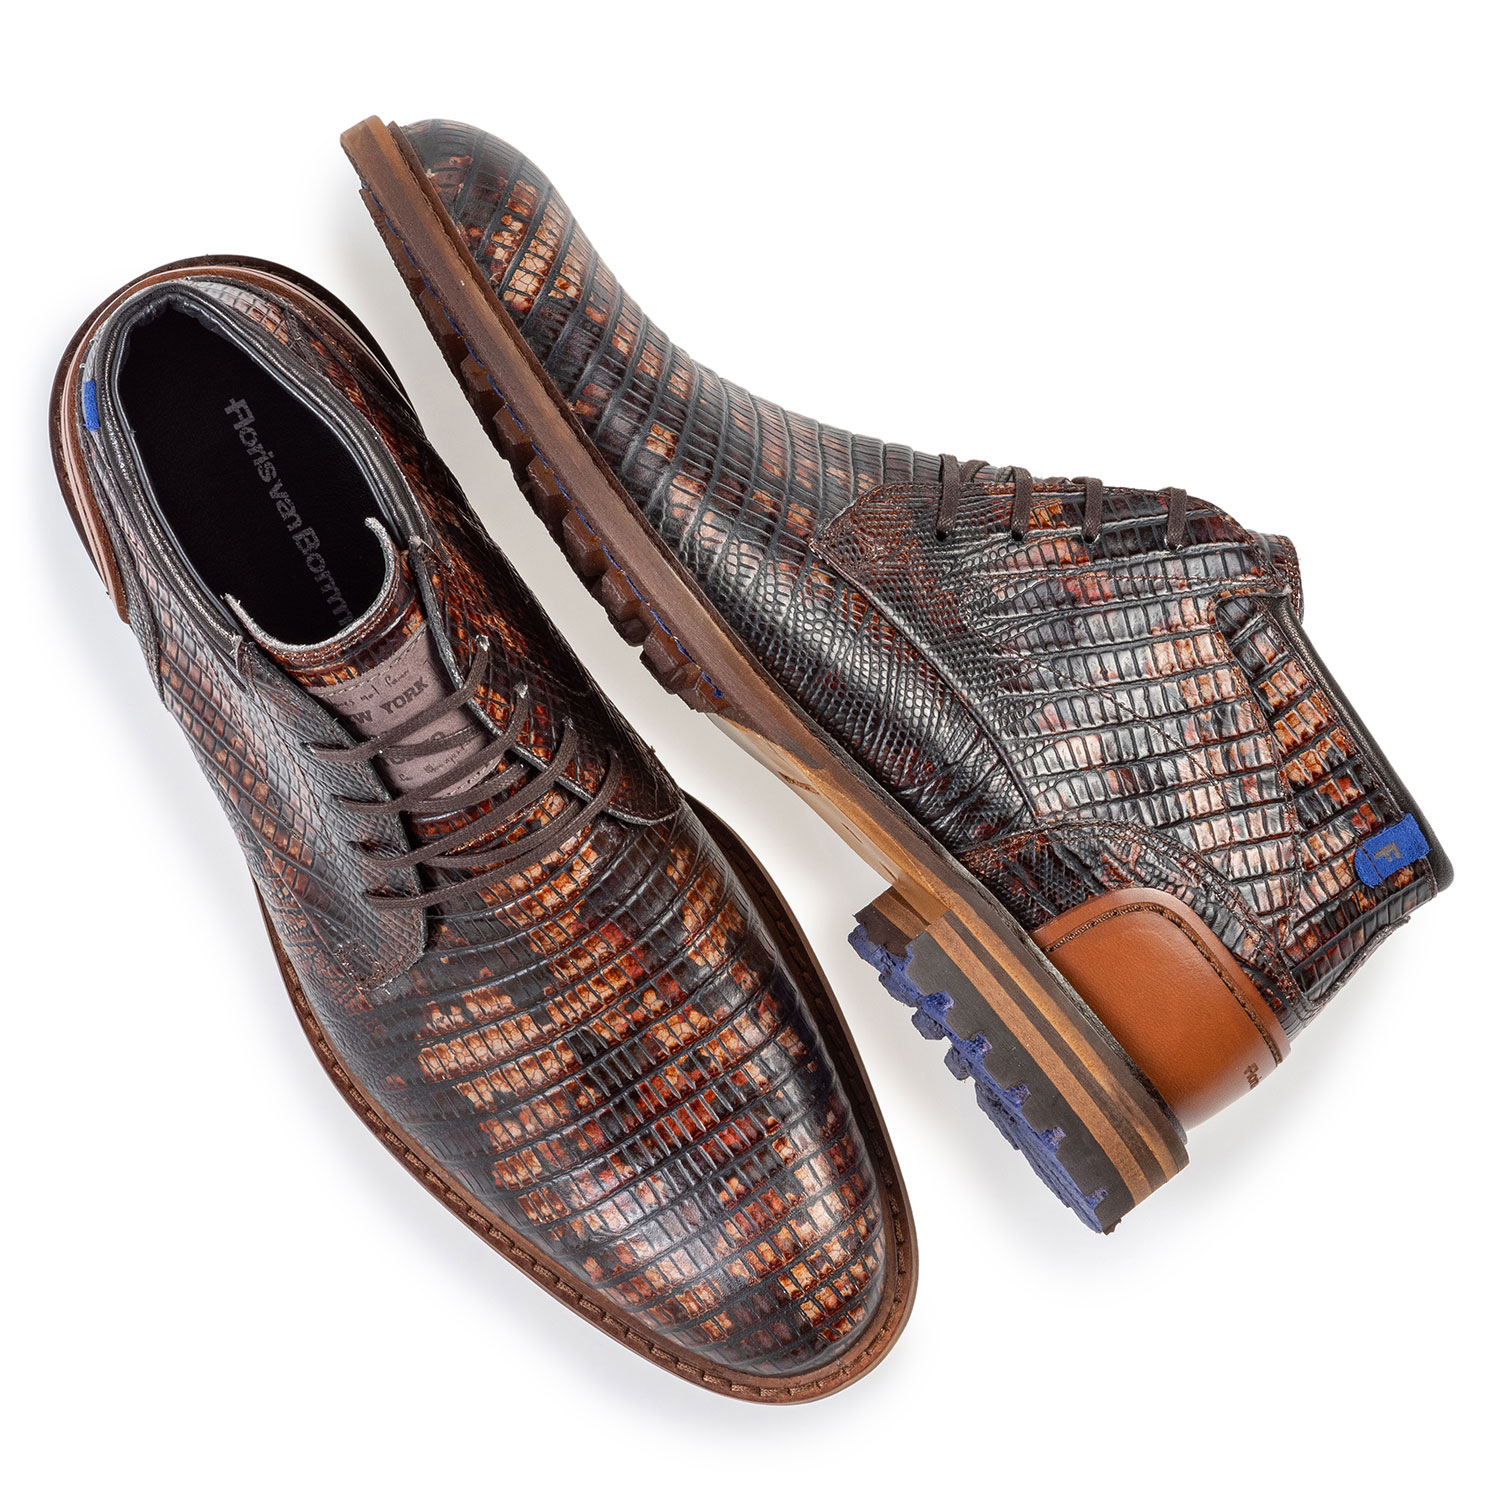 20102/15 - Crepi boot lizardprint cognac